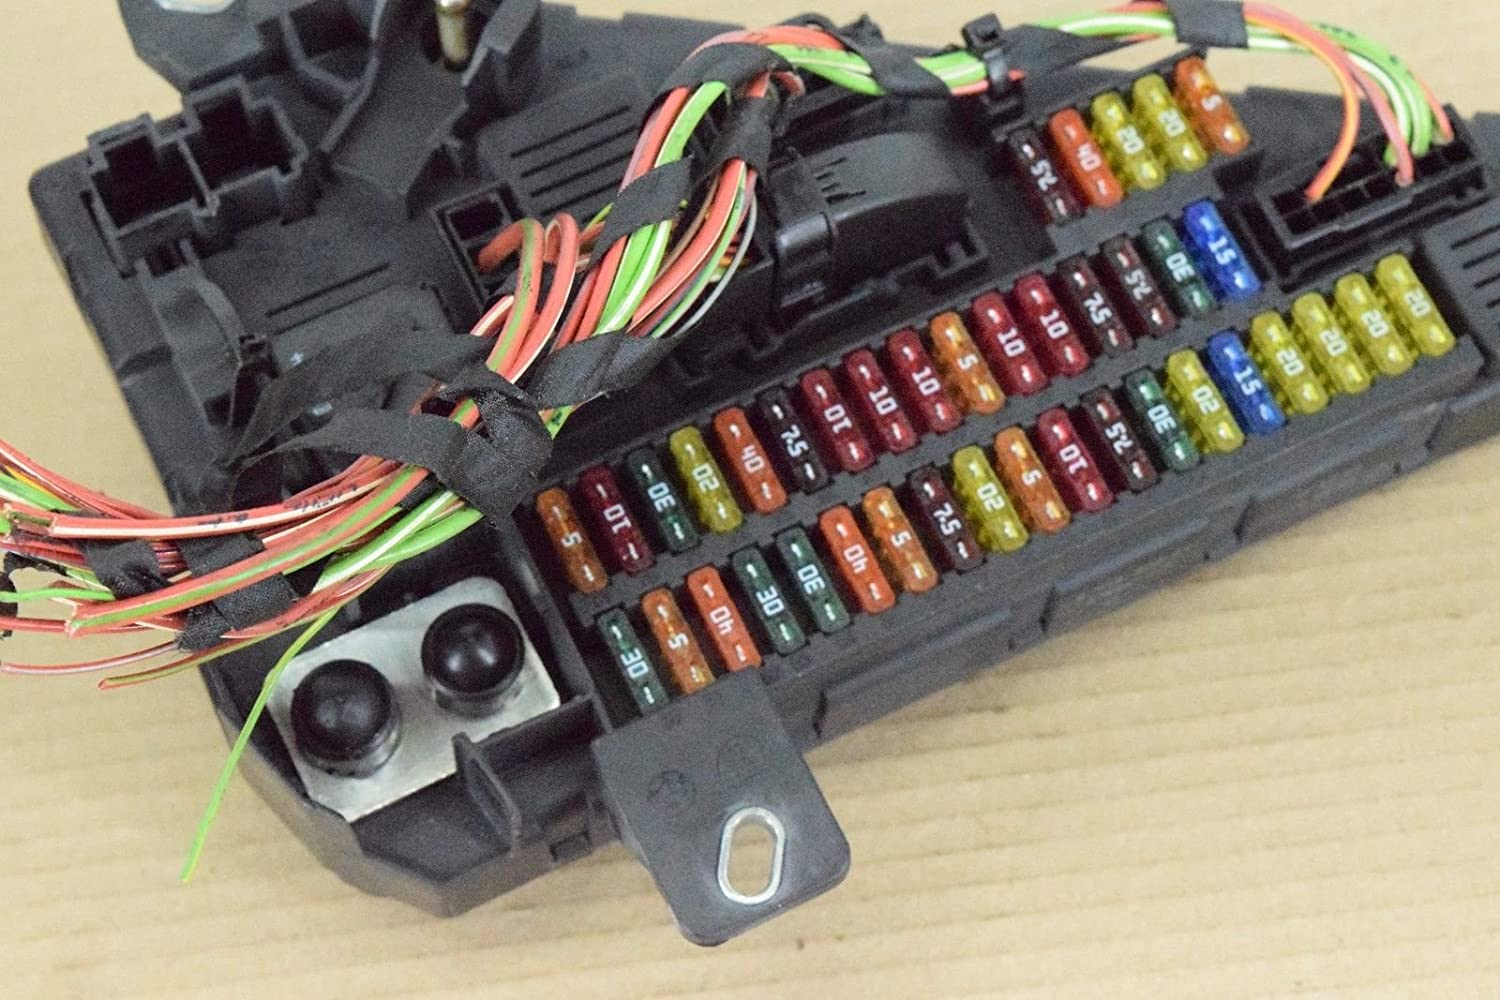 amazon com: bmw e60 rear trunk distribution fuse box module oem 528i 528xi  535xi